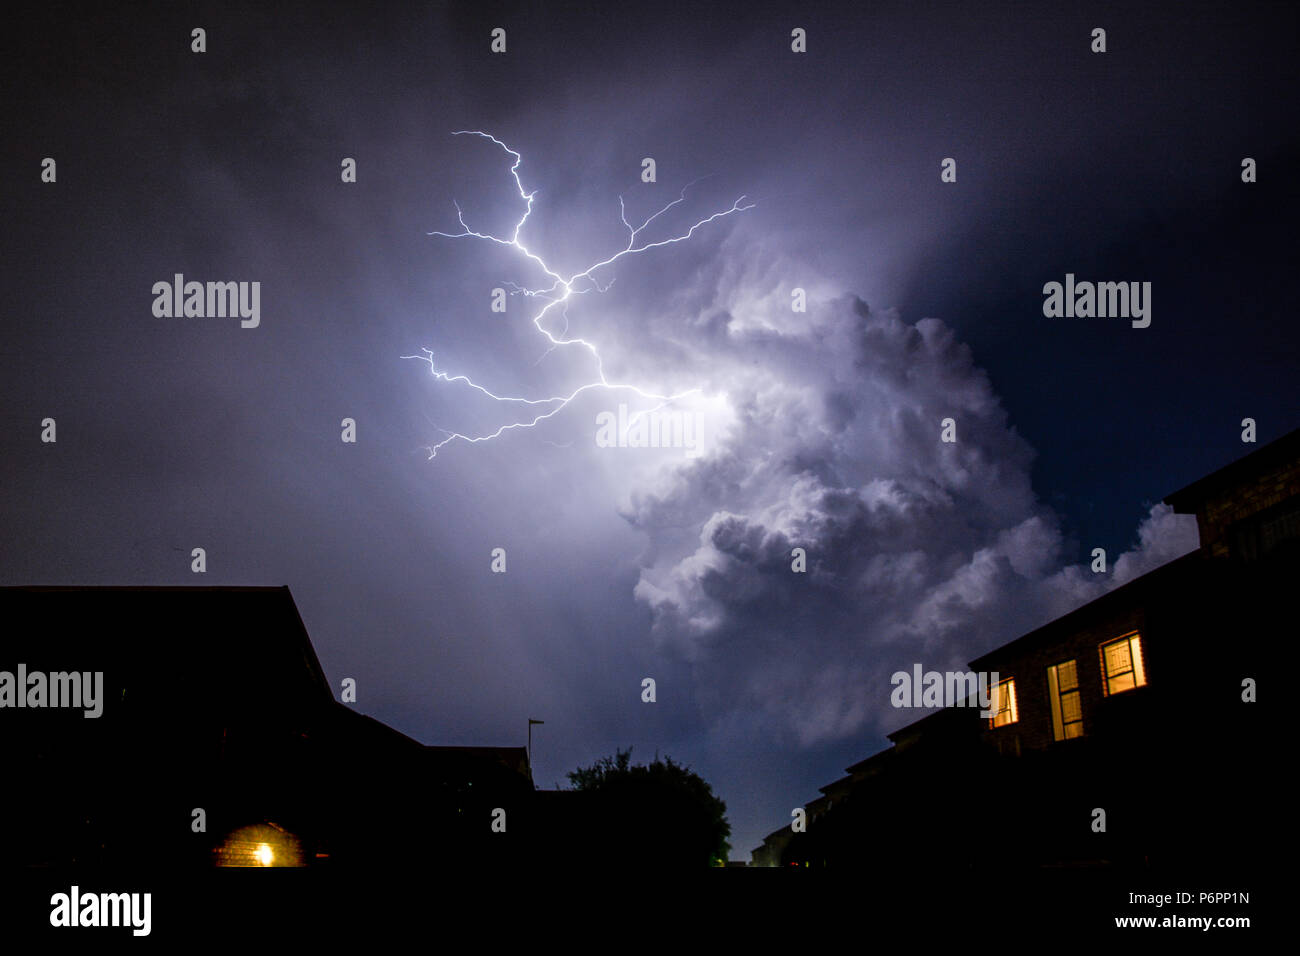 Cloud to Cloud lightning strikes over the urban rooftops in the night skies, Johannesburg Stock Photo